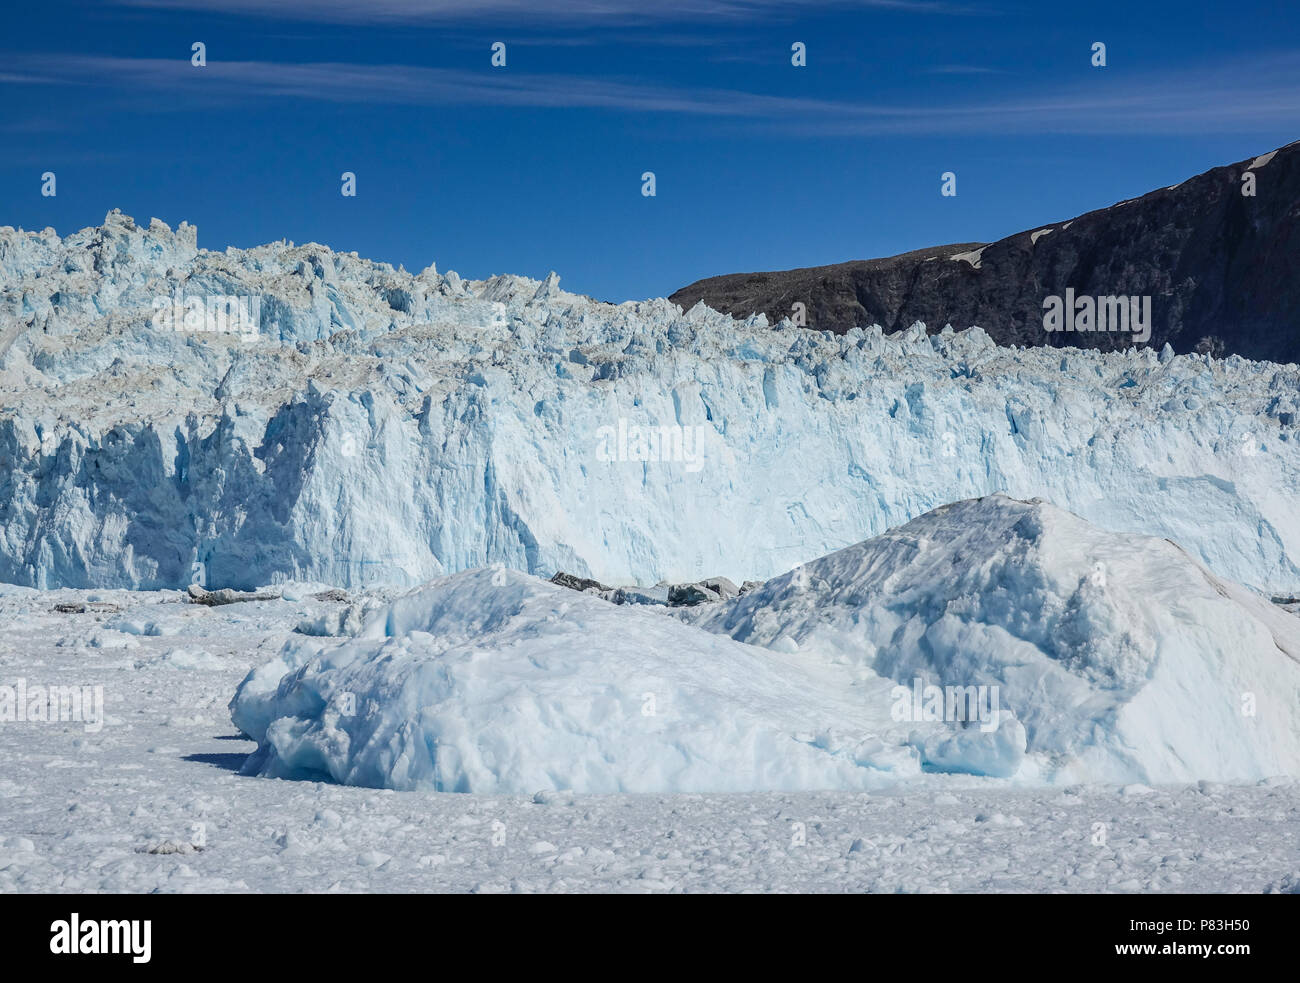 26.06.2018, Gronland, Denmark: View of the approximately 200-meter-high demolition edge of the Eqi Glacier near the coastal town of Ilulissat in western Greenland. Photo: Patrick Pleul/dpa-Zentralbild/ZB | usage worldwide - Stock Image